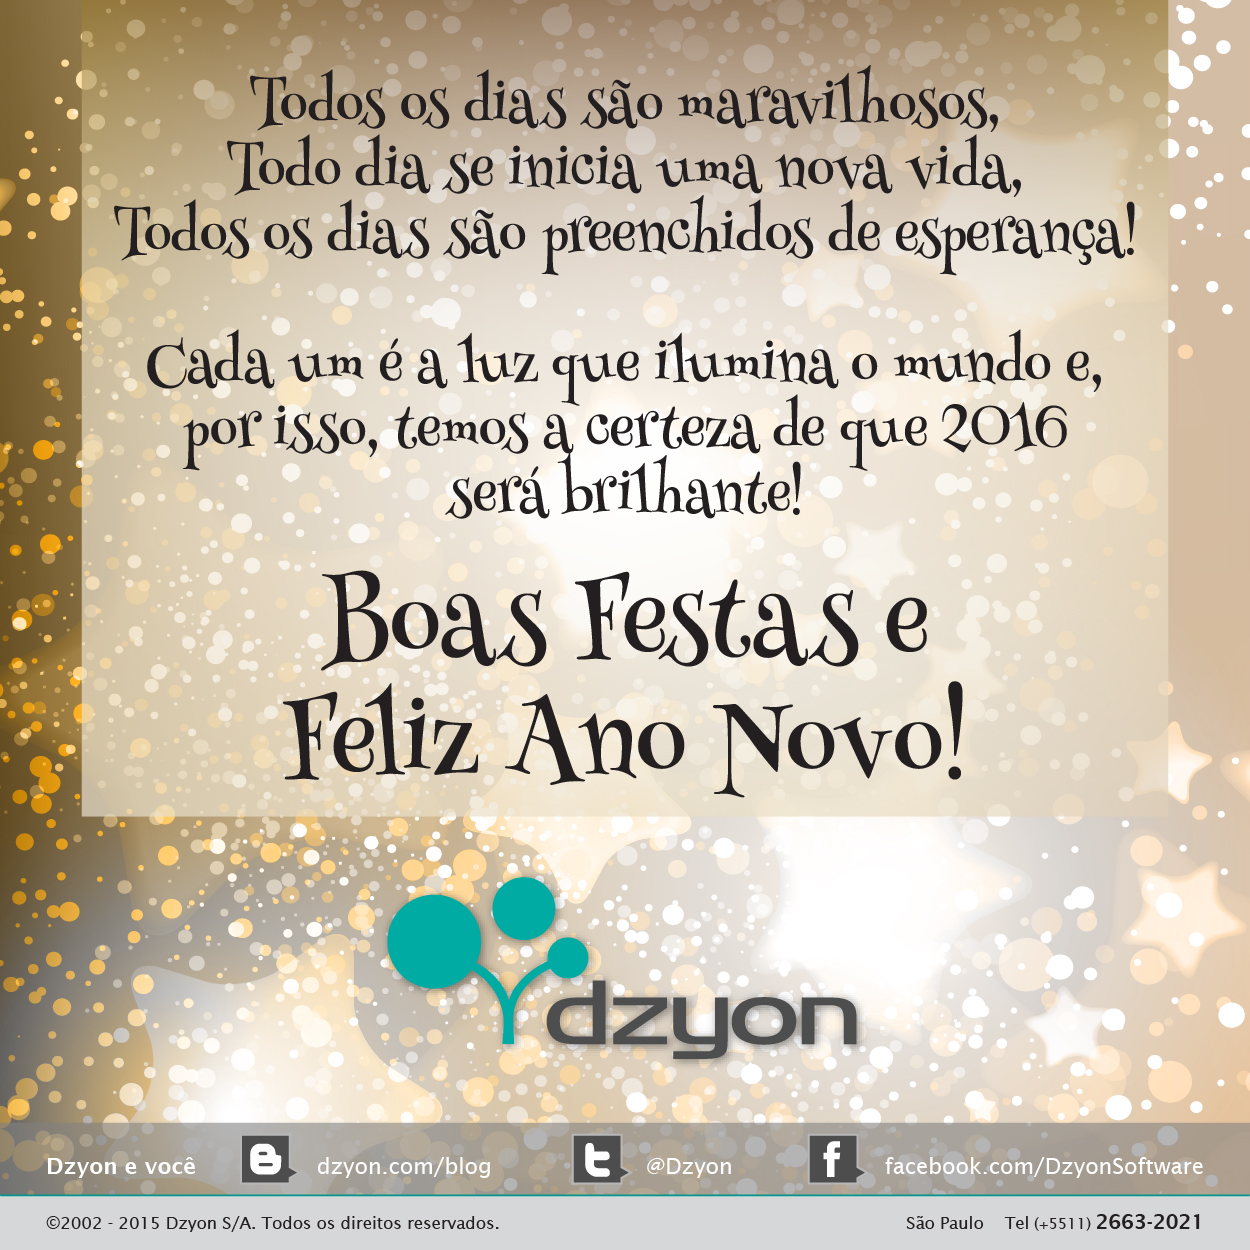 Dzyon_Post_Boas_Festas_rev1-01